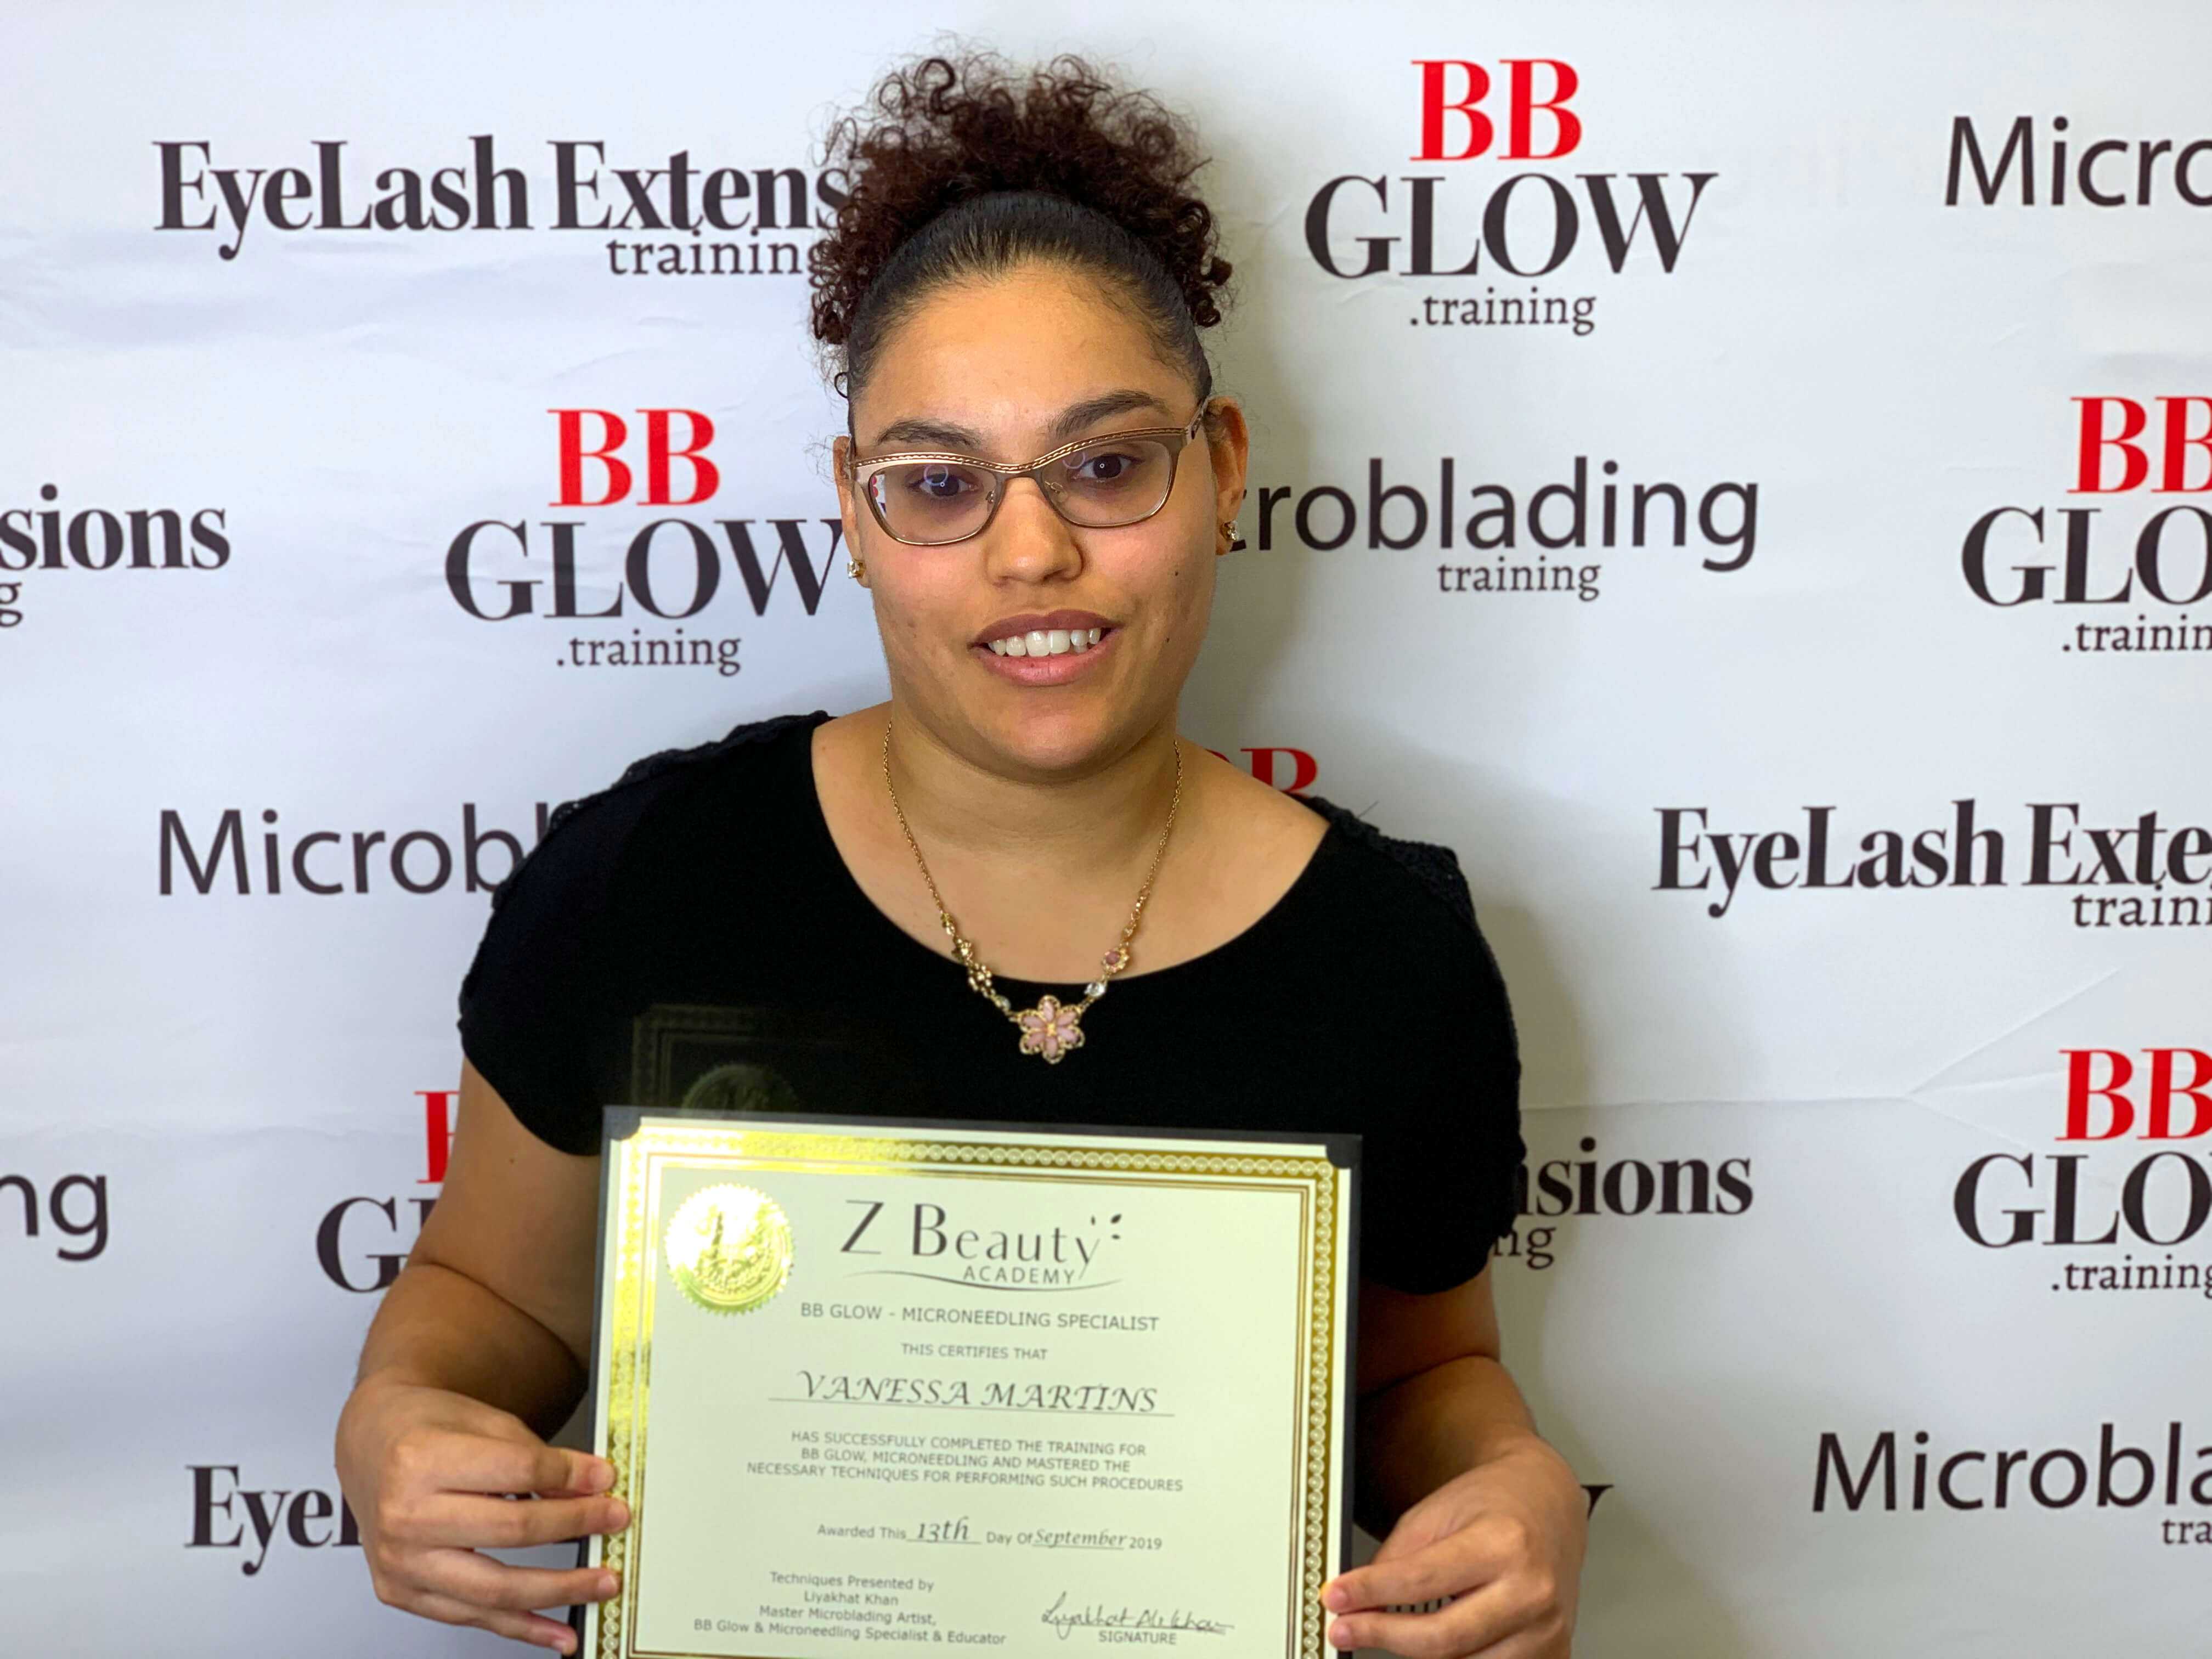 Get your BB Glow Training Either In Person Or Online